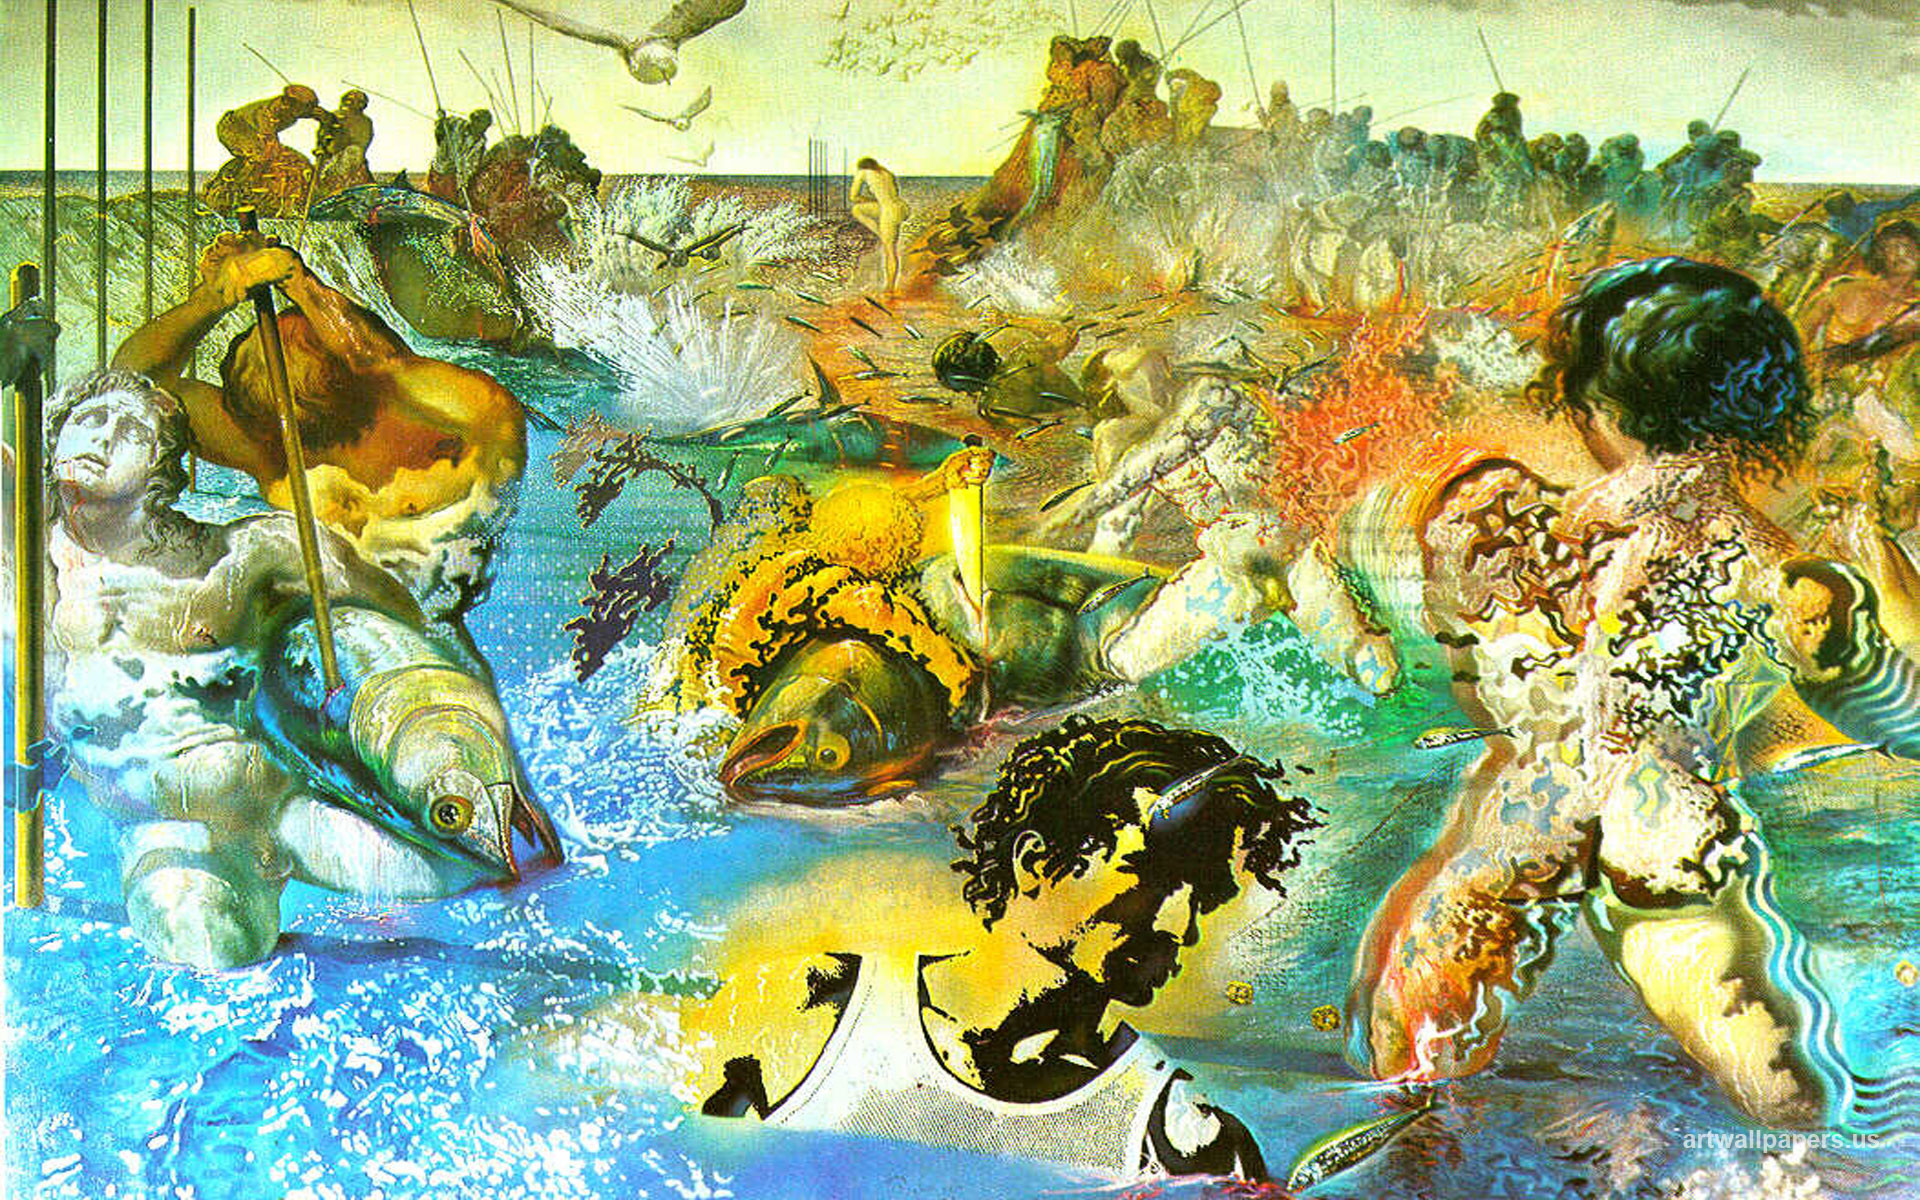 1920x1200 Salvador Dali Wallpaper 04. 1600 x 1200 . 1680 x 1050 . Full HD Wallpaper  1080p 1920 x 1080 : 1920 ...